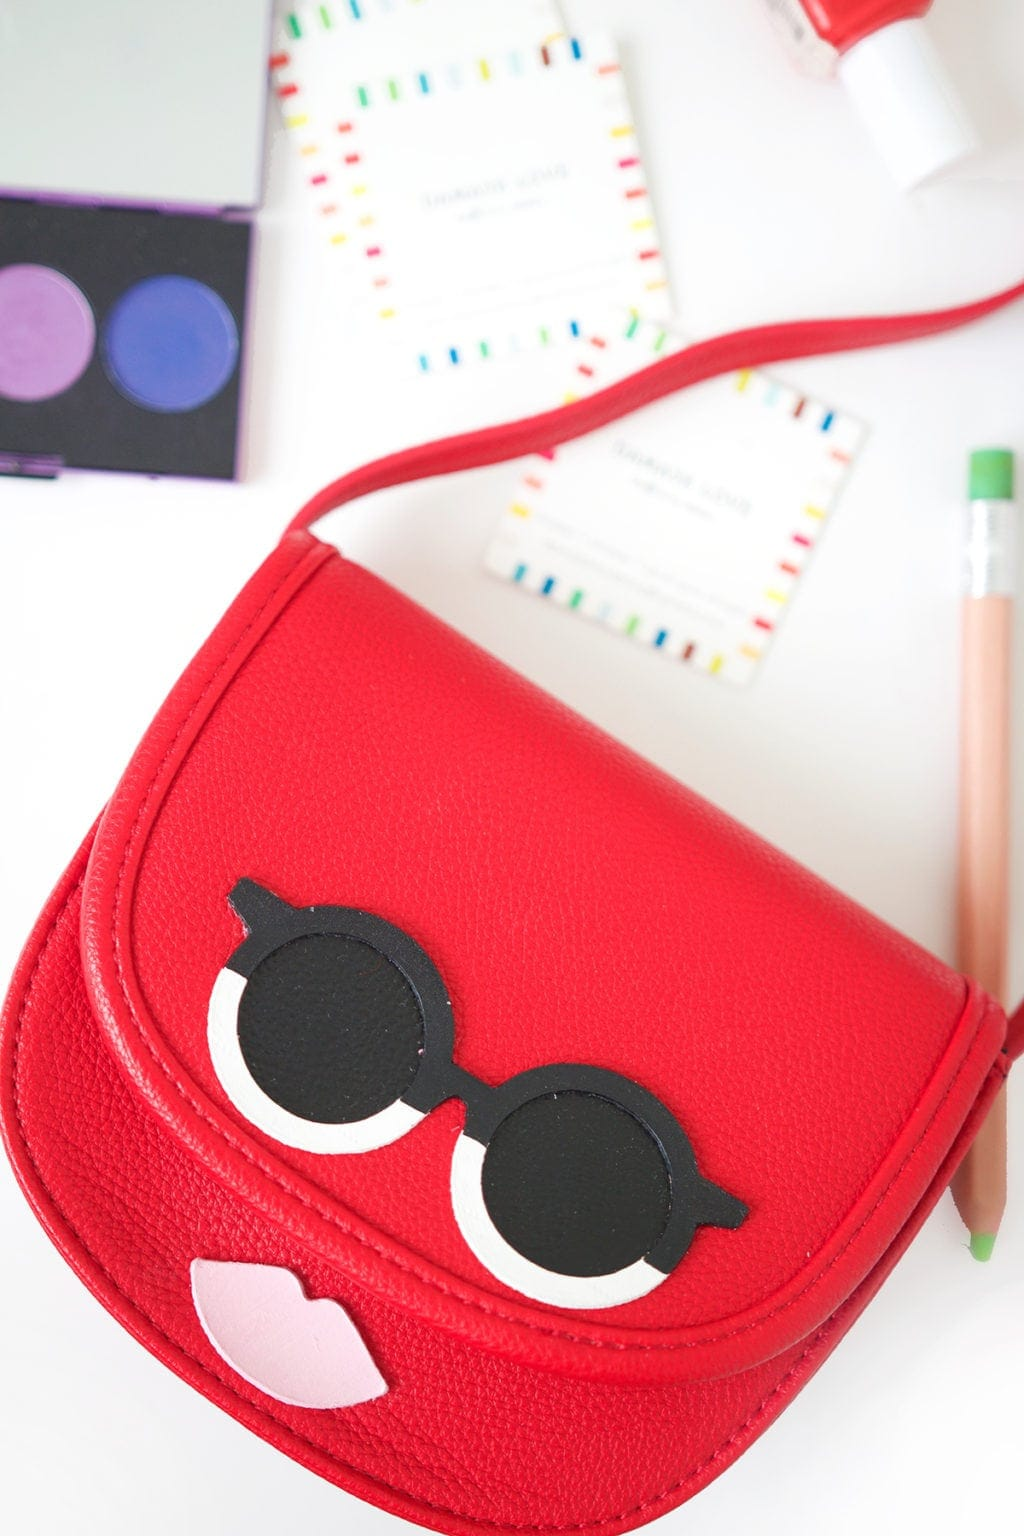 red purse with face added using leather